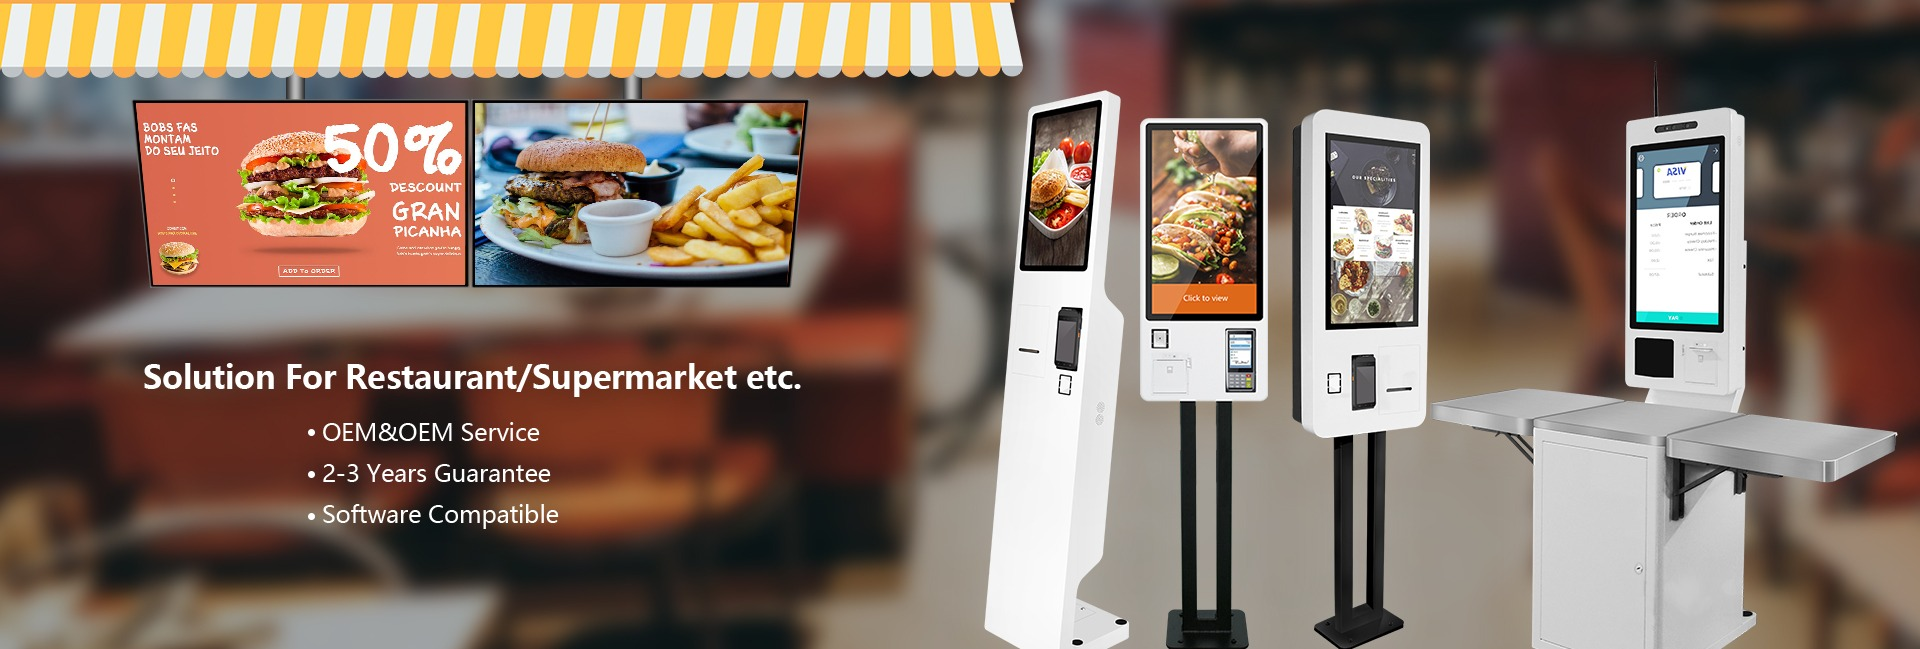 on table restaurant ordering app Digital Screens and self order kiosk